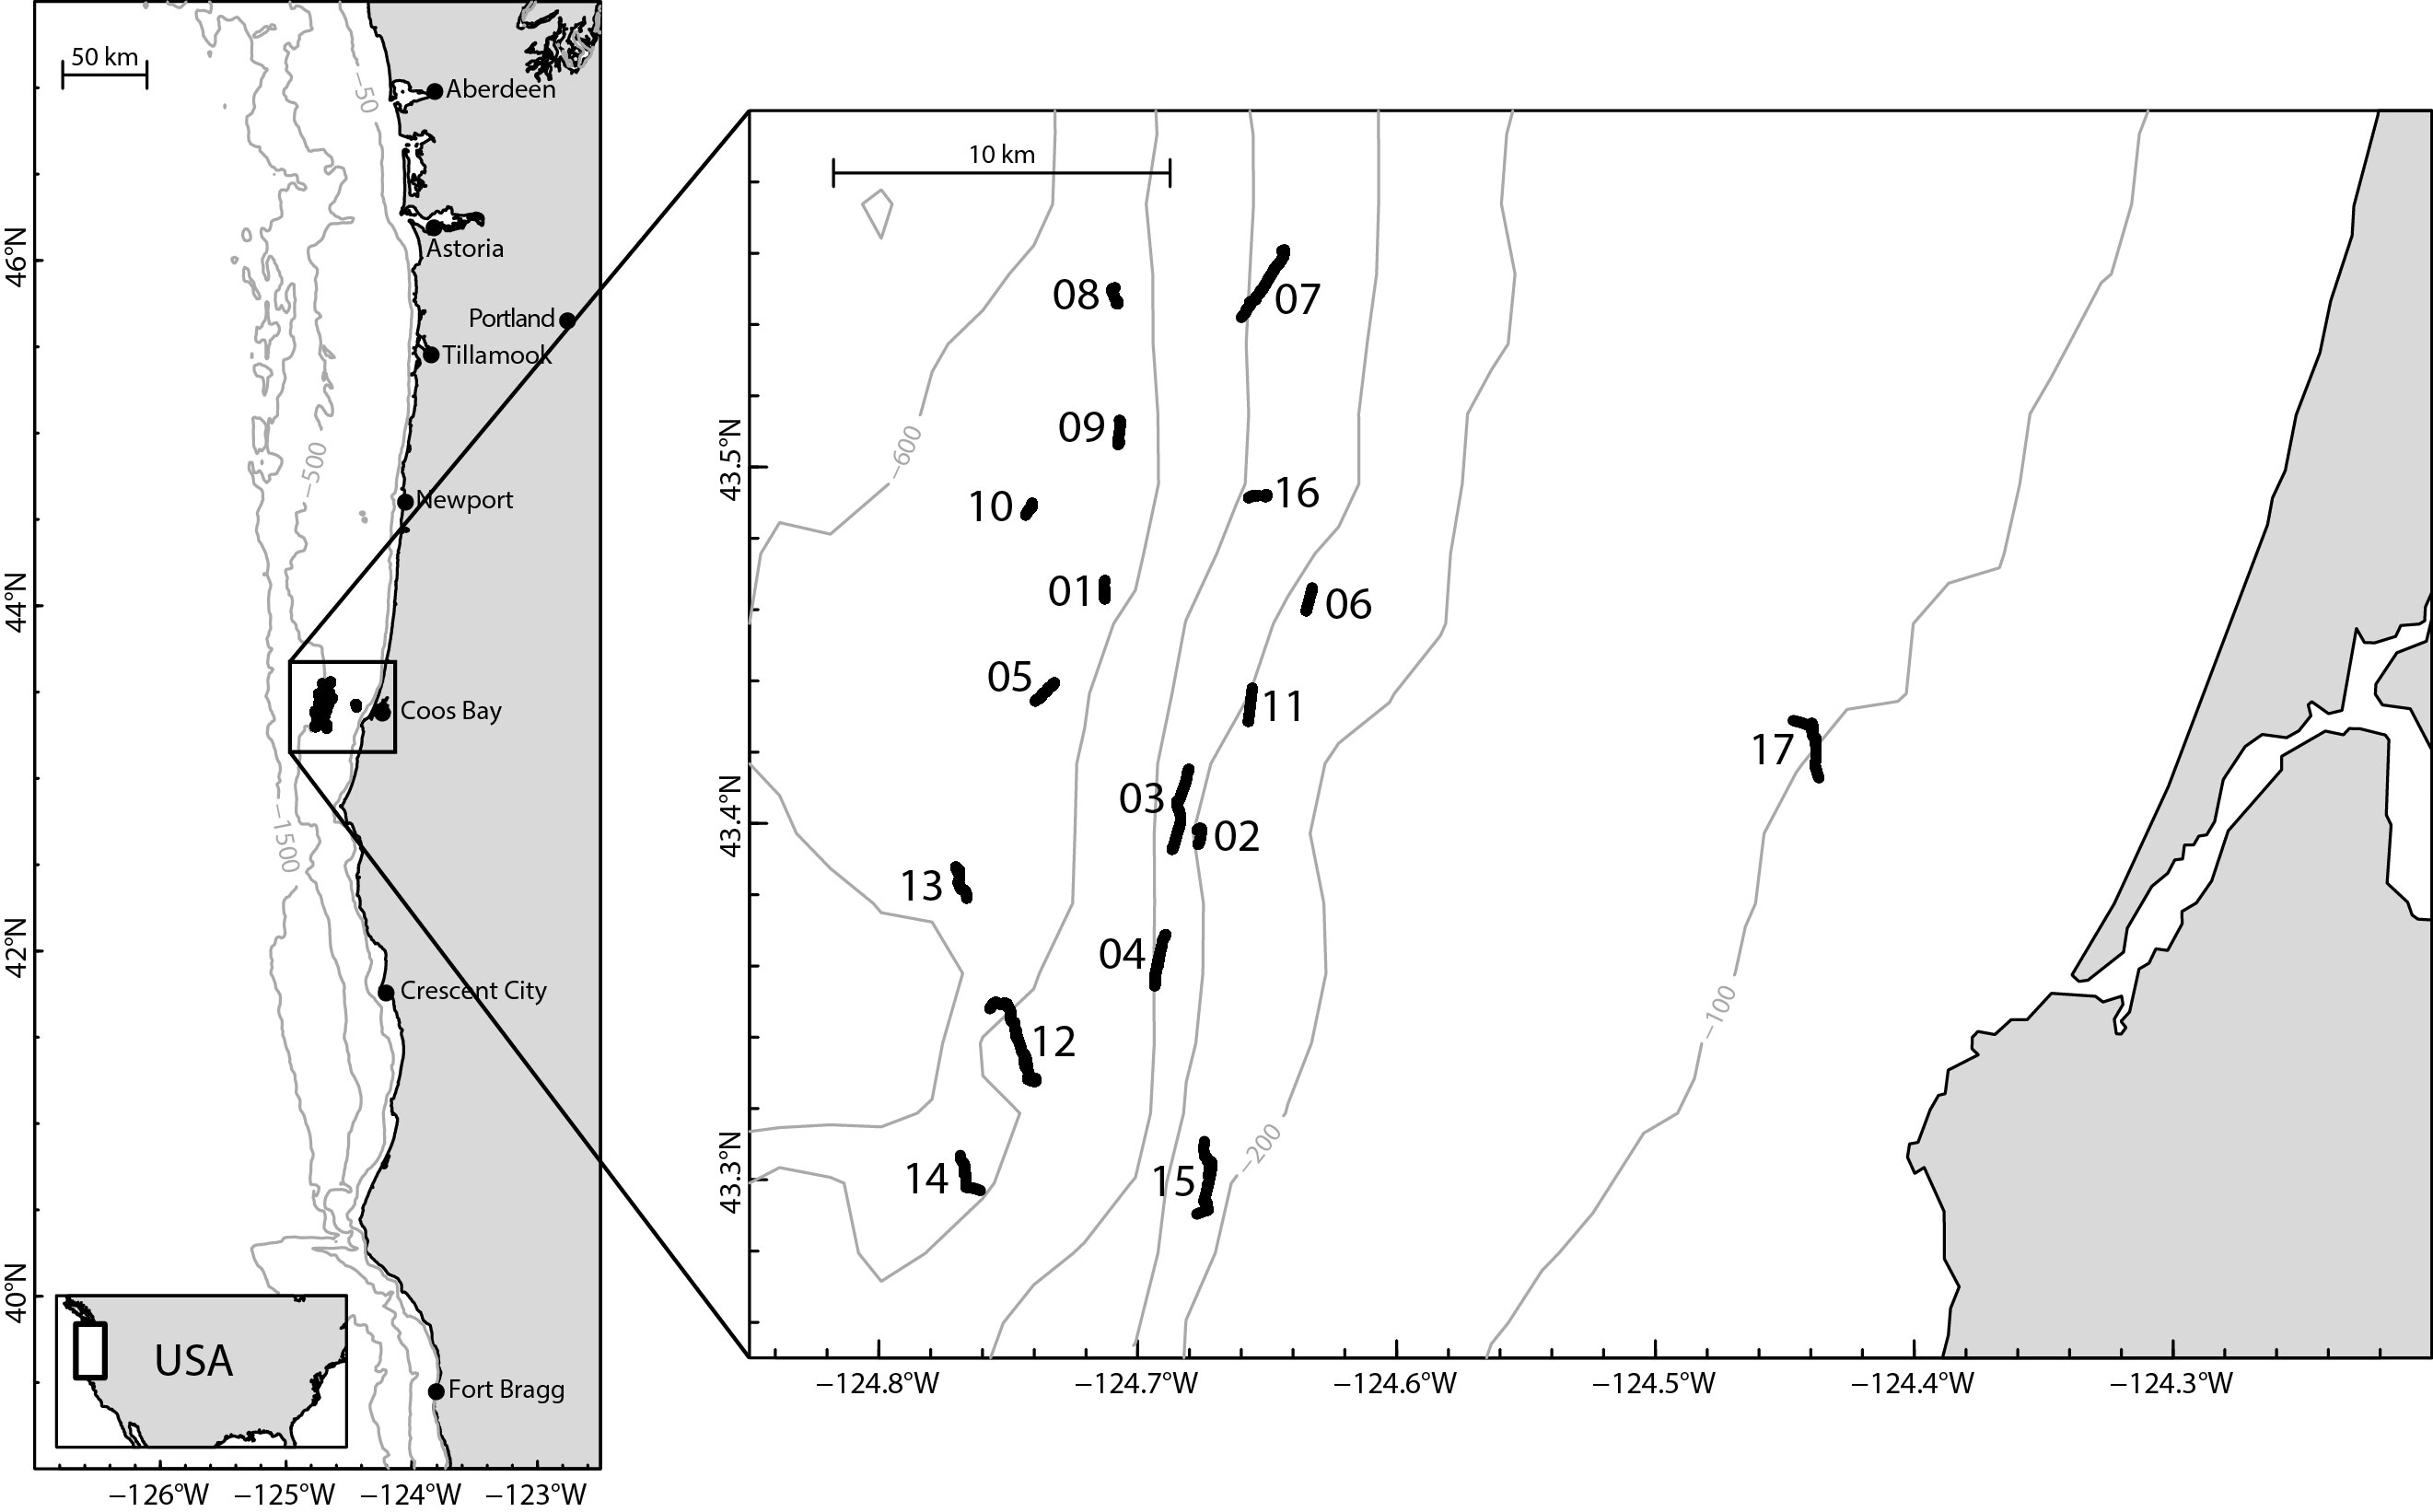 Map showing dive locations for video collection during the Oregon OCS survey (USGS 2014-607-FA).